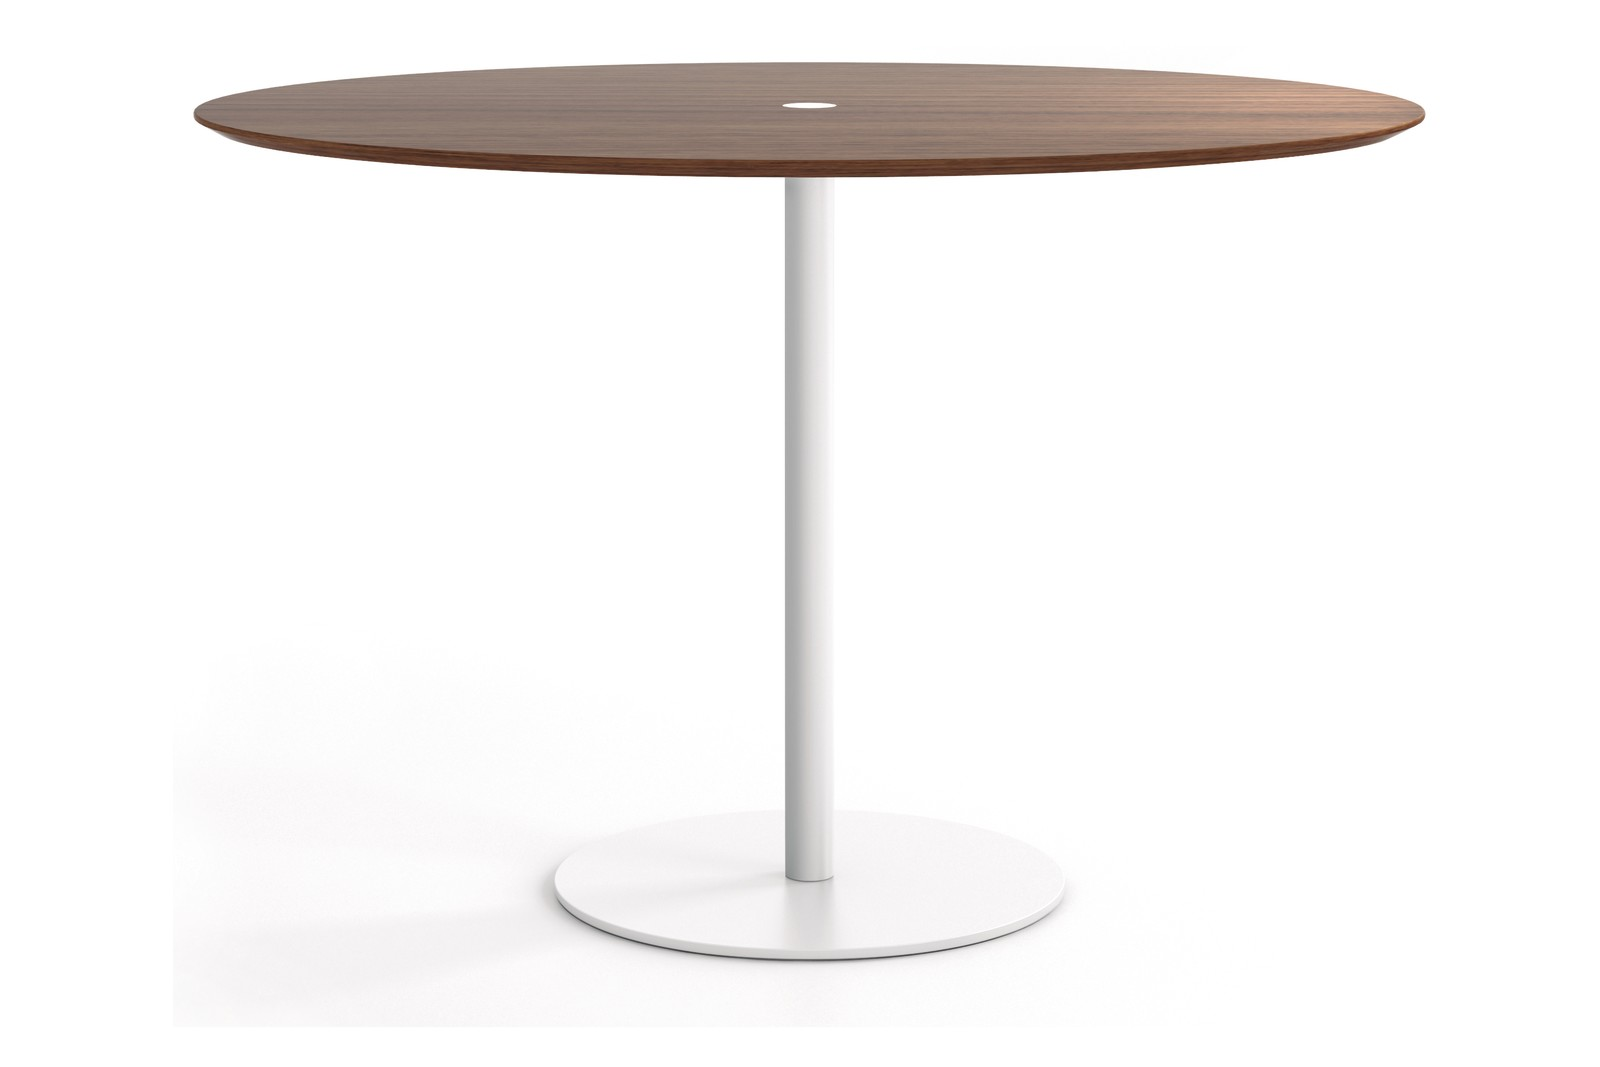 Núcleo Dining Table, Round White Textured Metal, Super-matt Walnut, 80